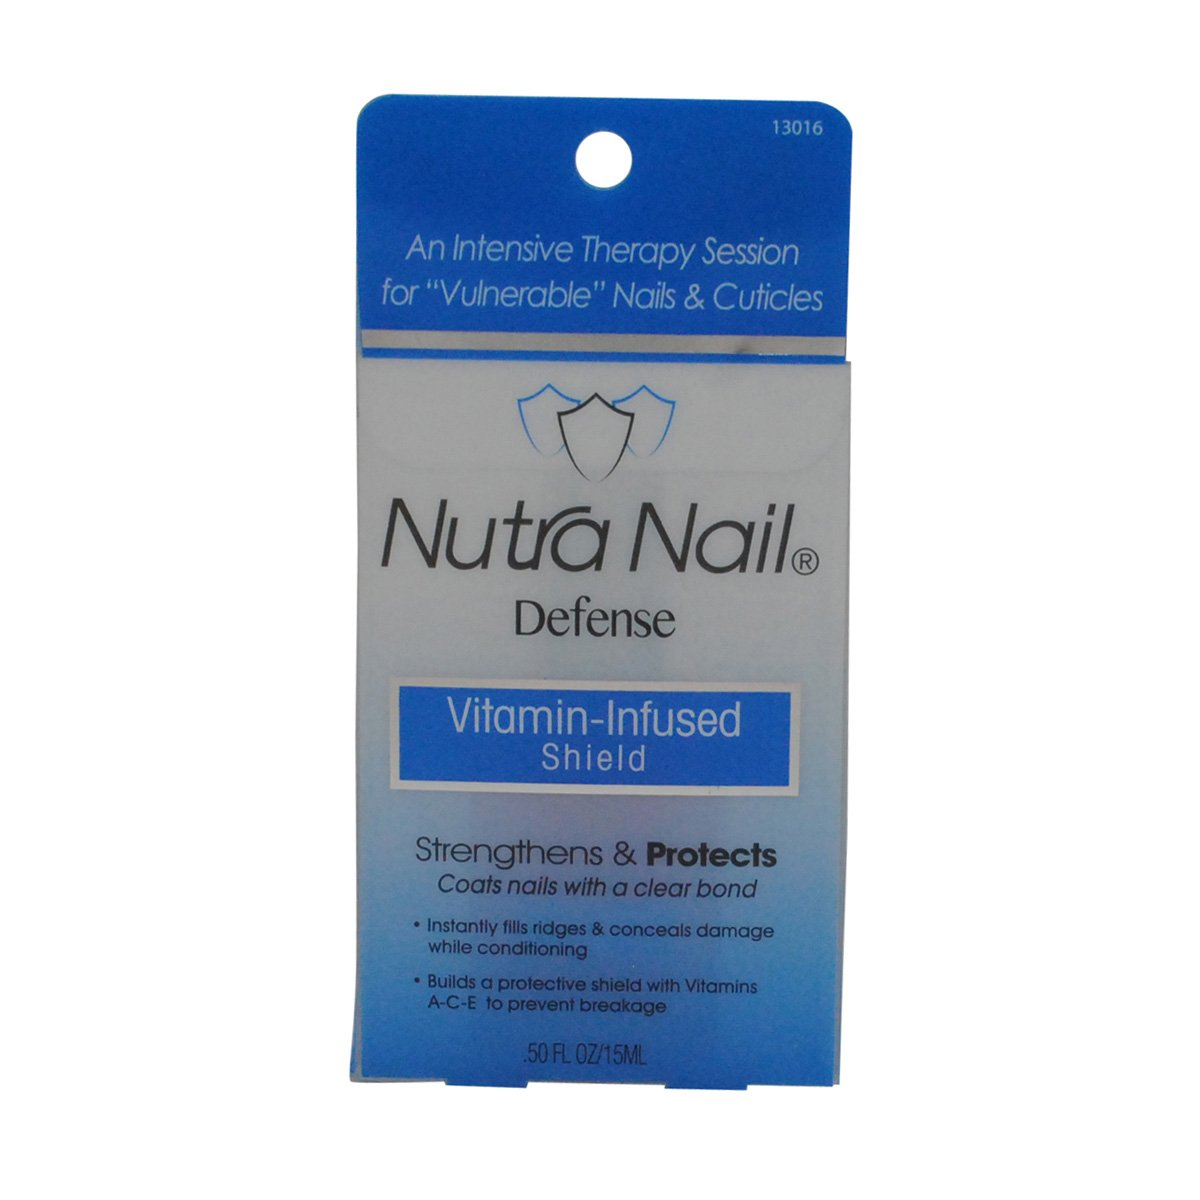 Nutra Nail ''Defense'' Vitamin-Infused Shield (Pack of 1)